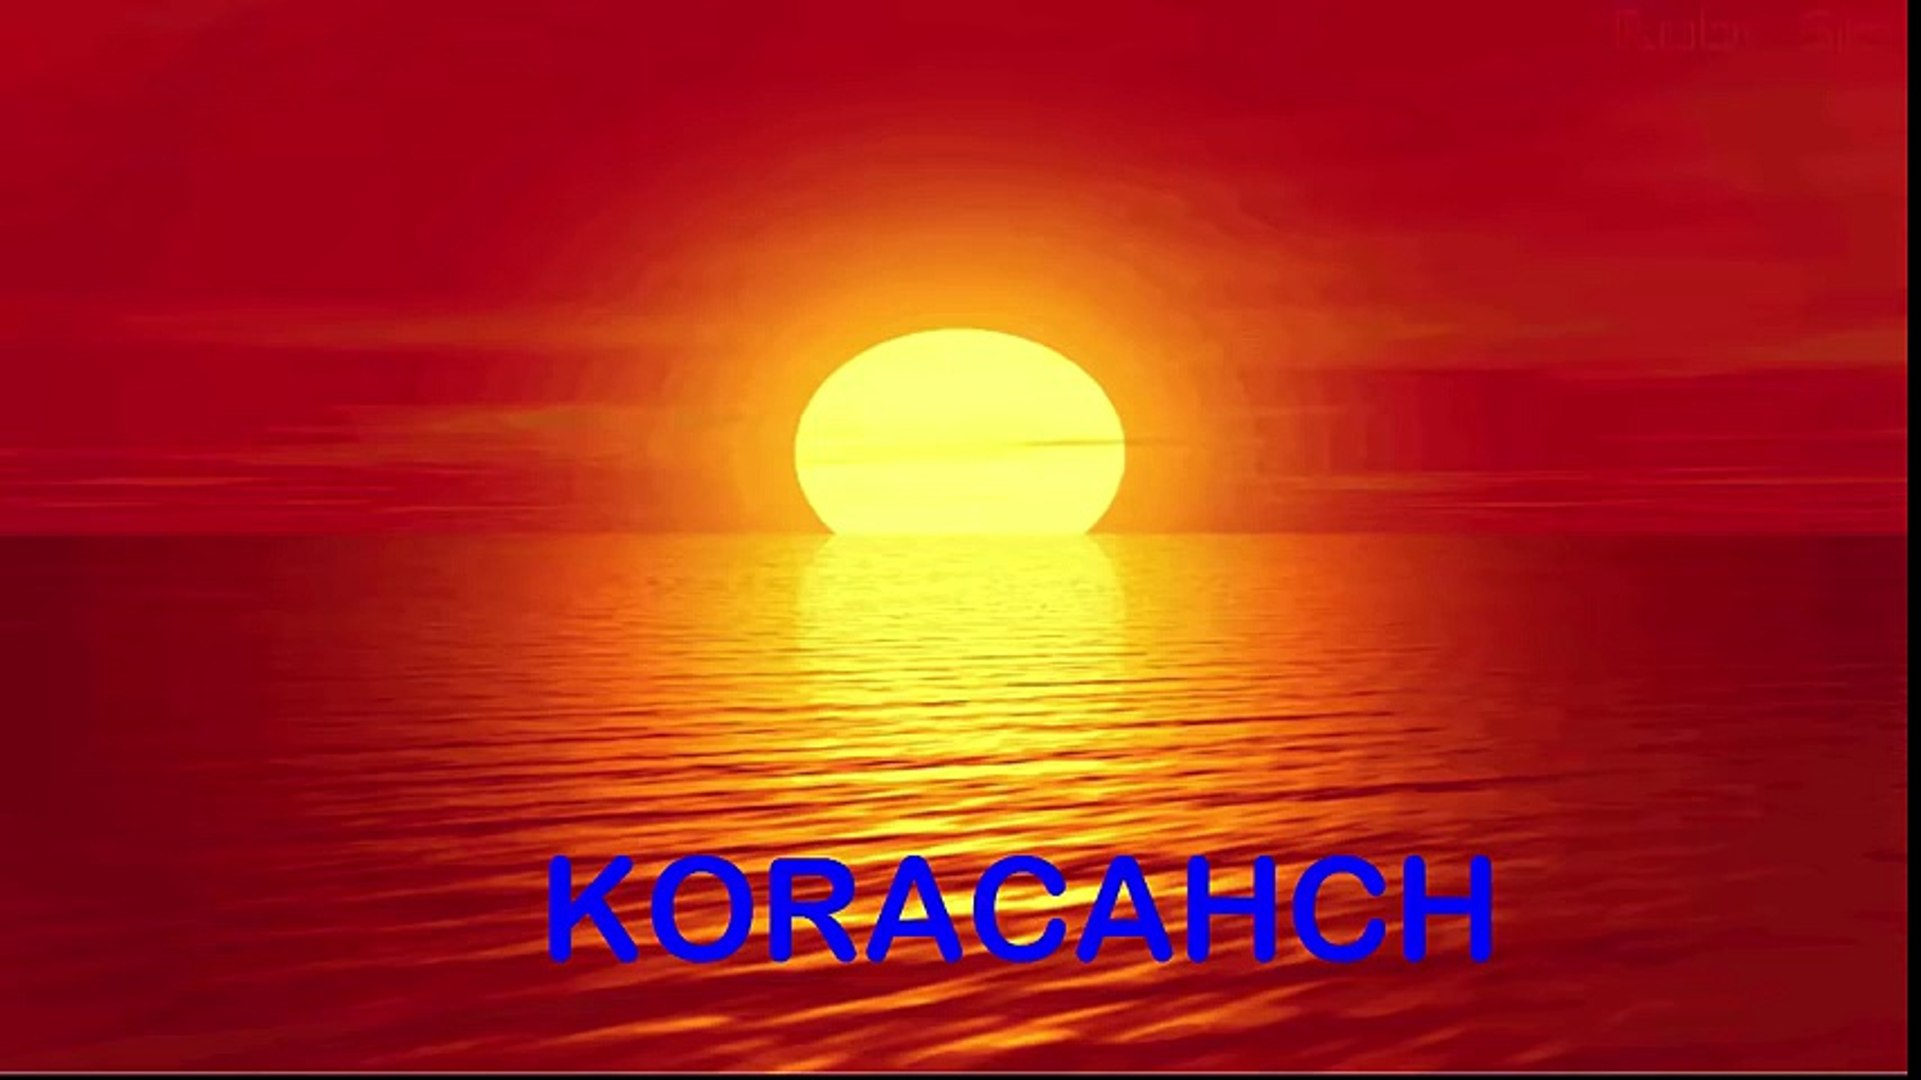 Eritrean new music Korchach-Seyh